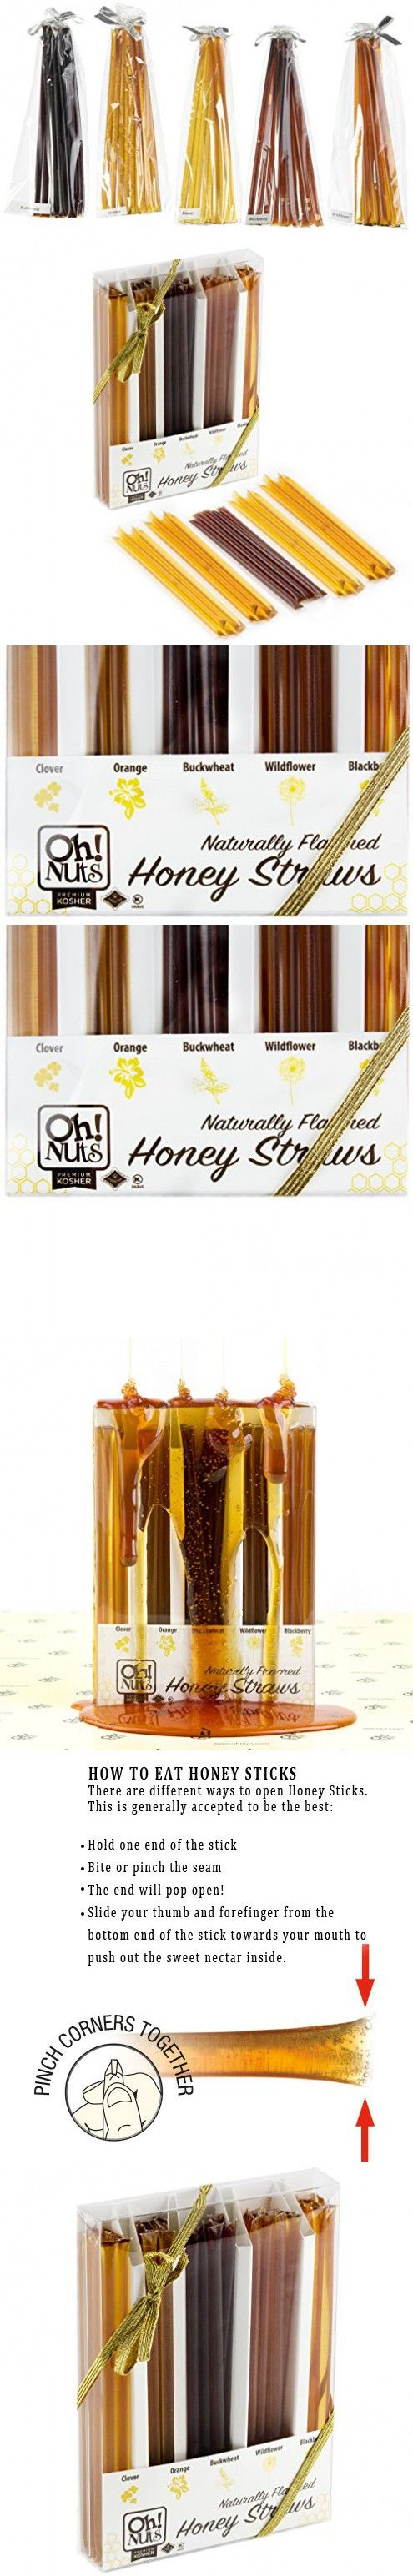 Holiday Honey 5 Flavor Gift Box 50-count, Honey Sticks Gift Set - Oh! Nuts